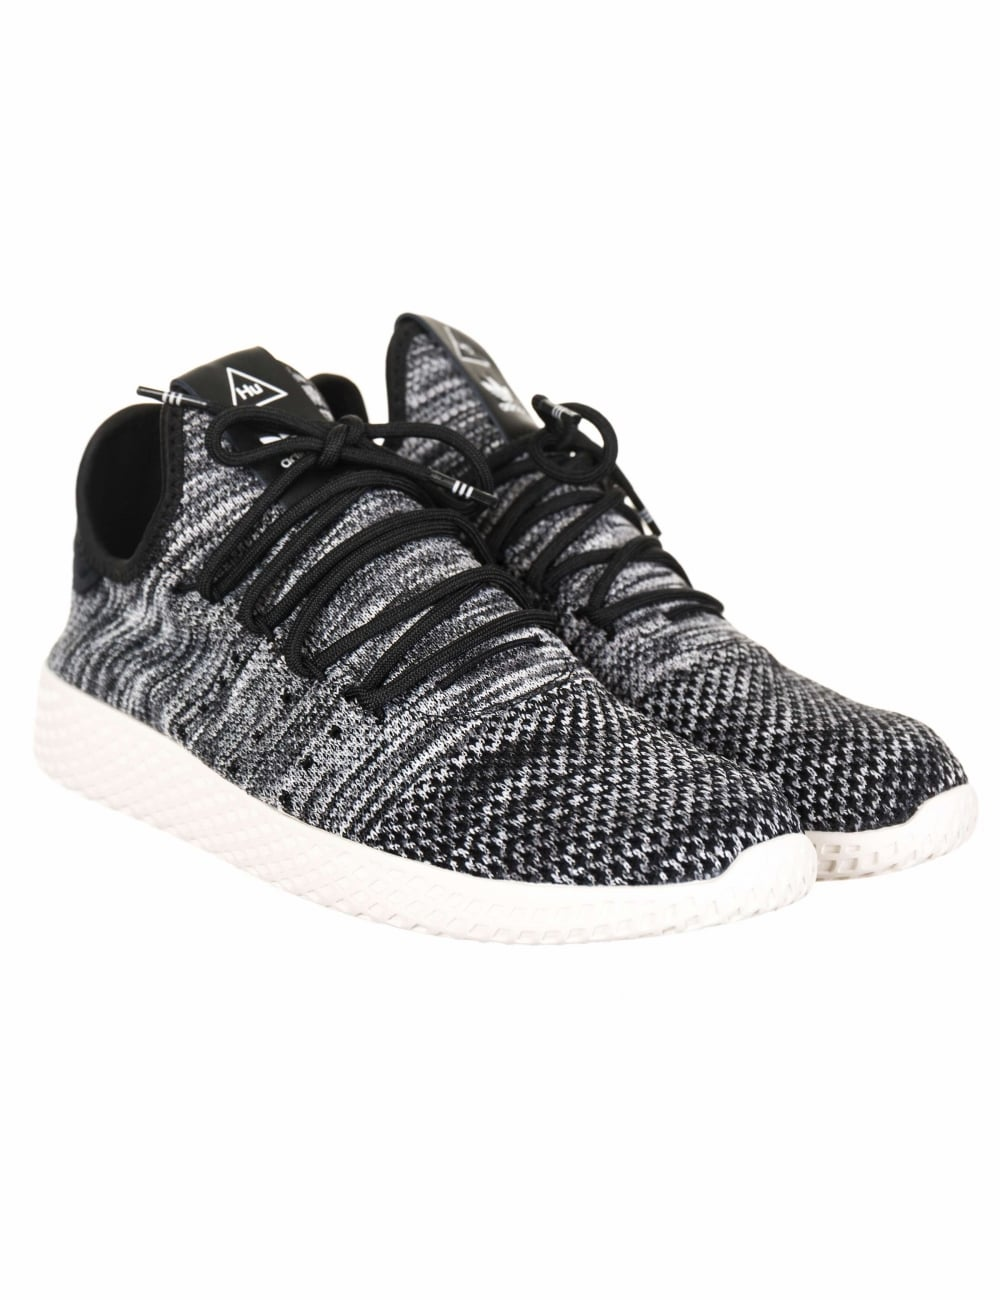 57b84d6c5893a Adidas Originals x Pharrell Williams Tennis HU PK Trainers - Chalk ...